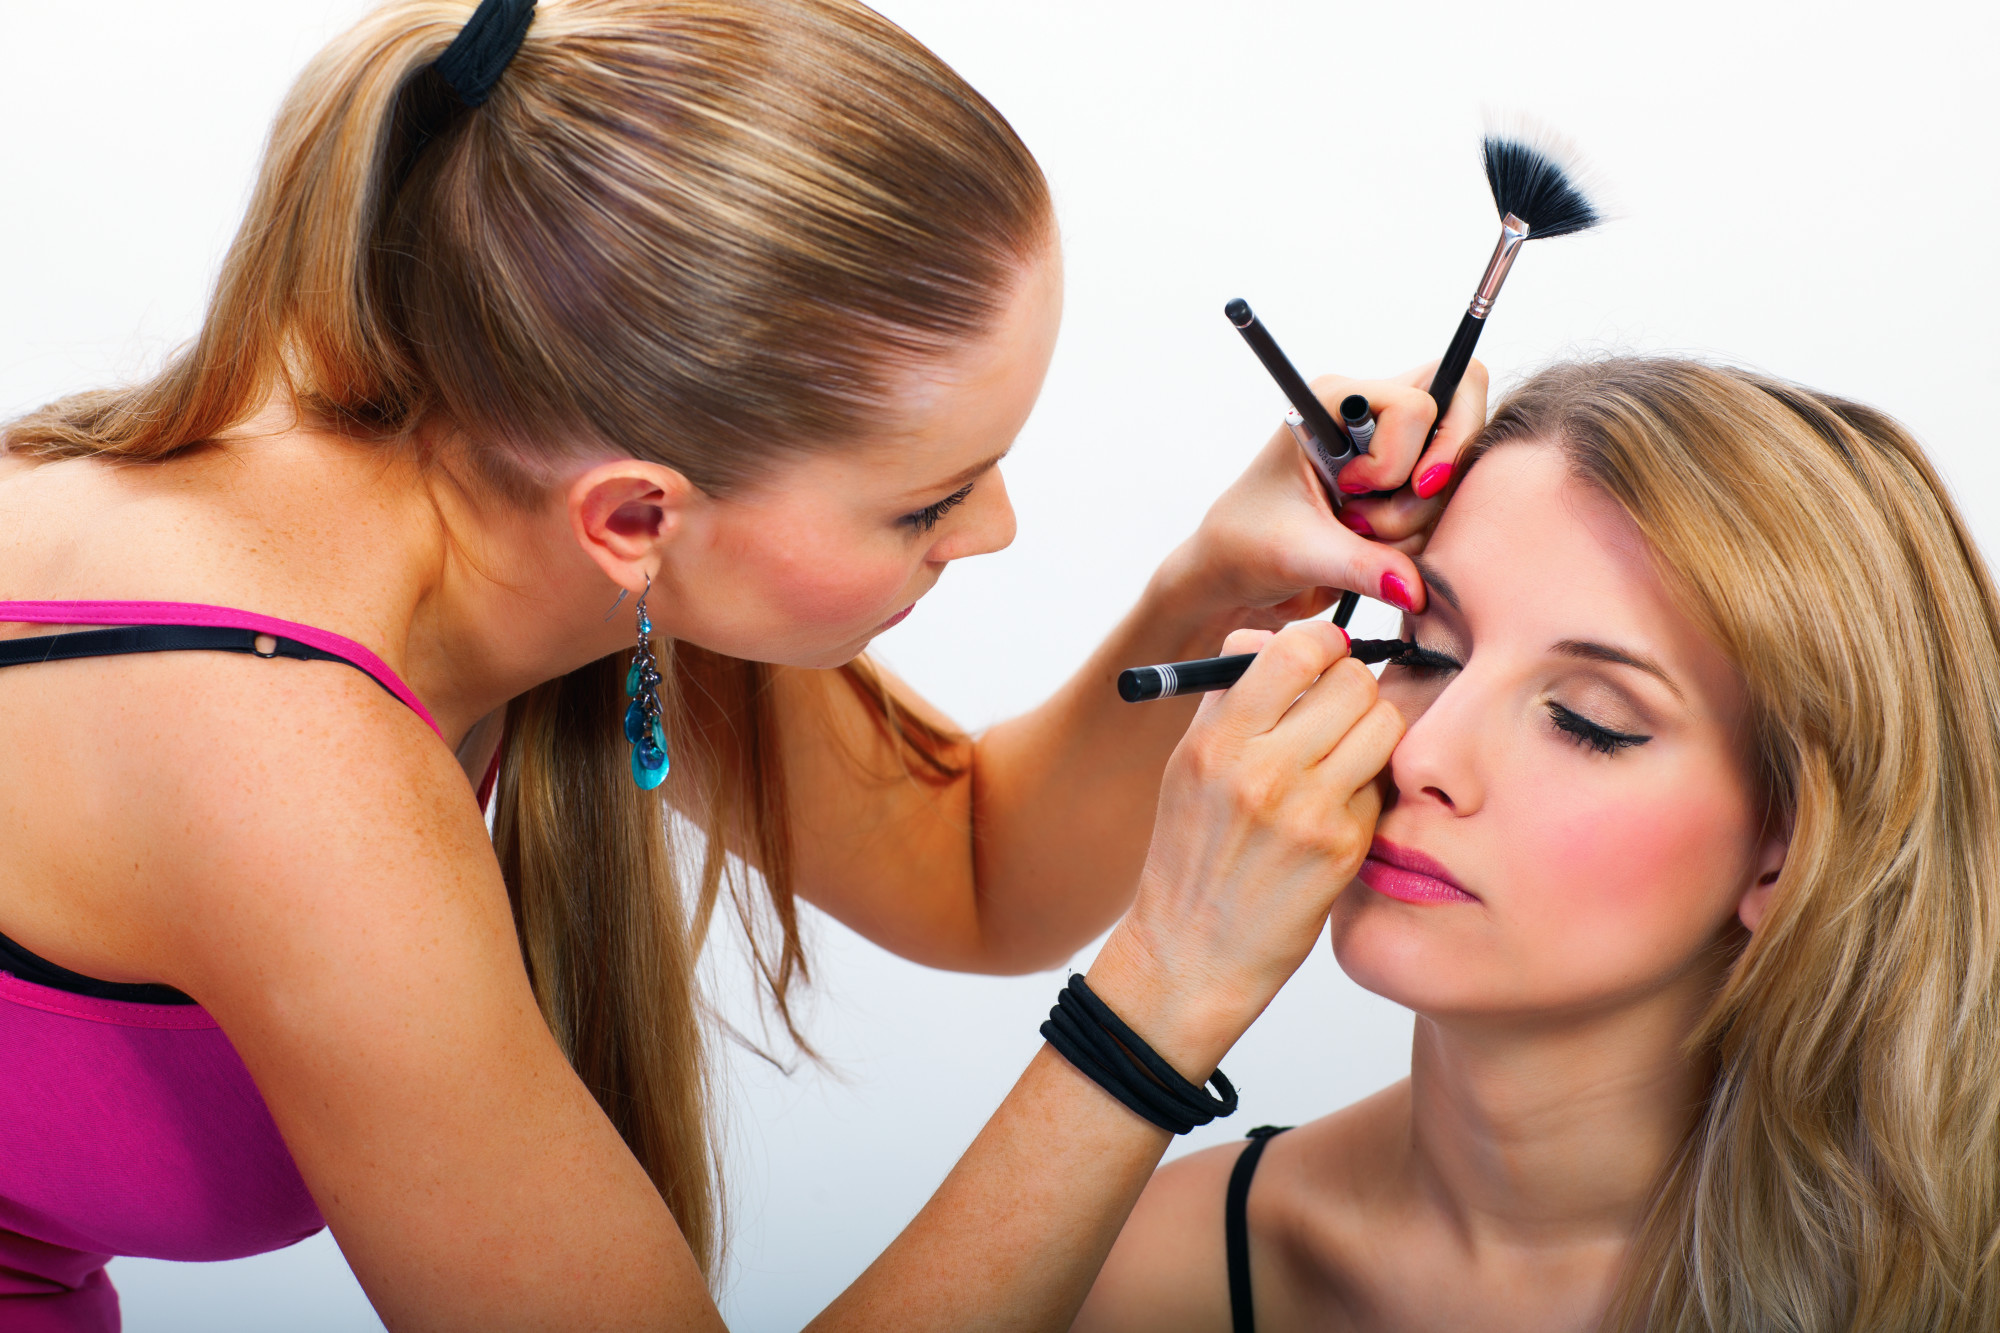 Make-up-for fun profumeria biologica bellabio ecochic gorizia